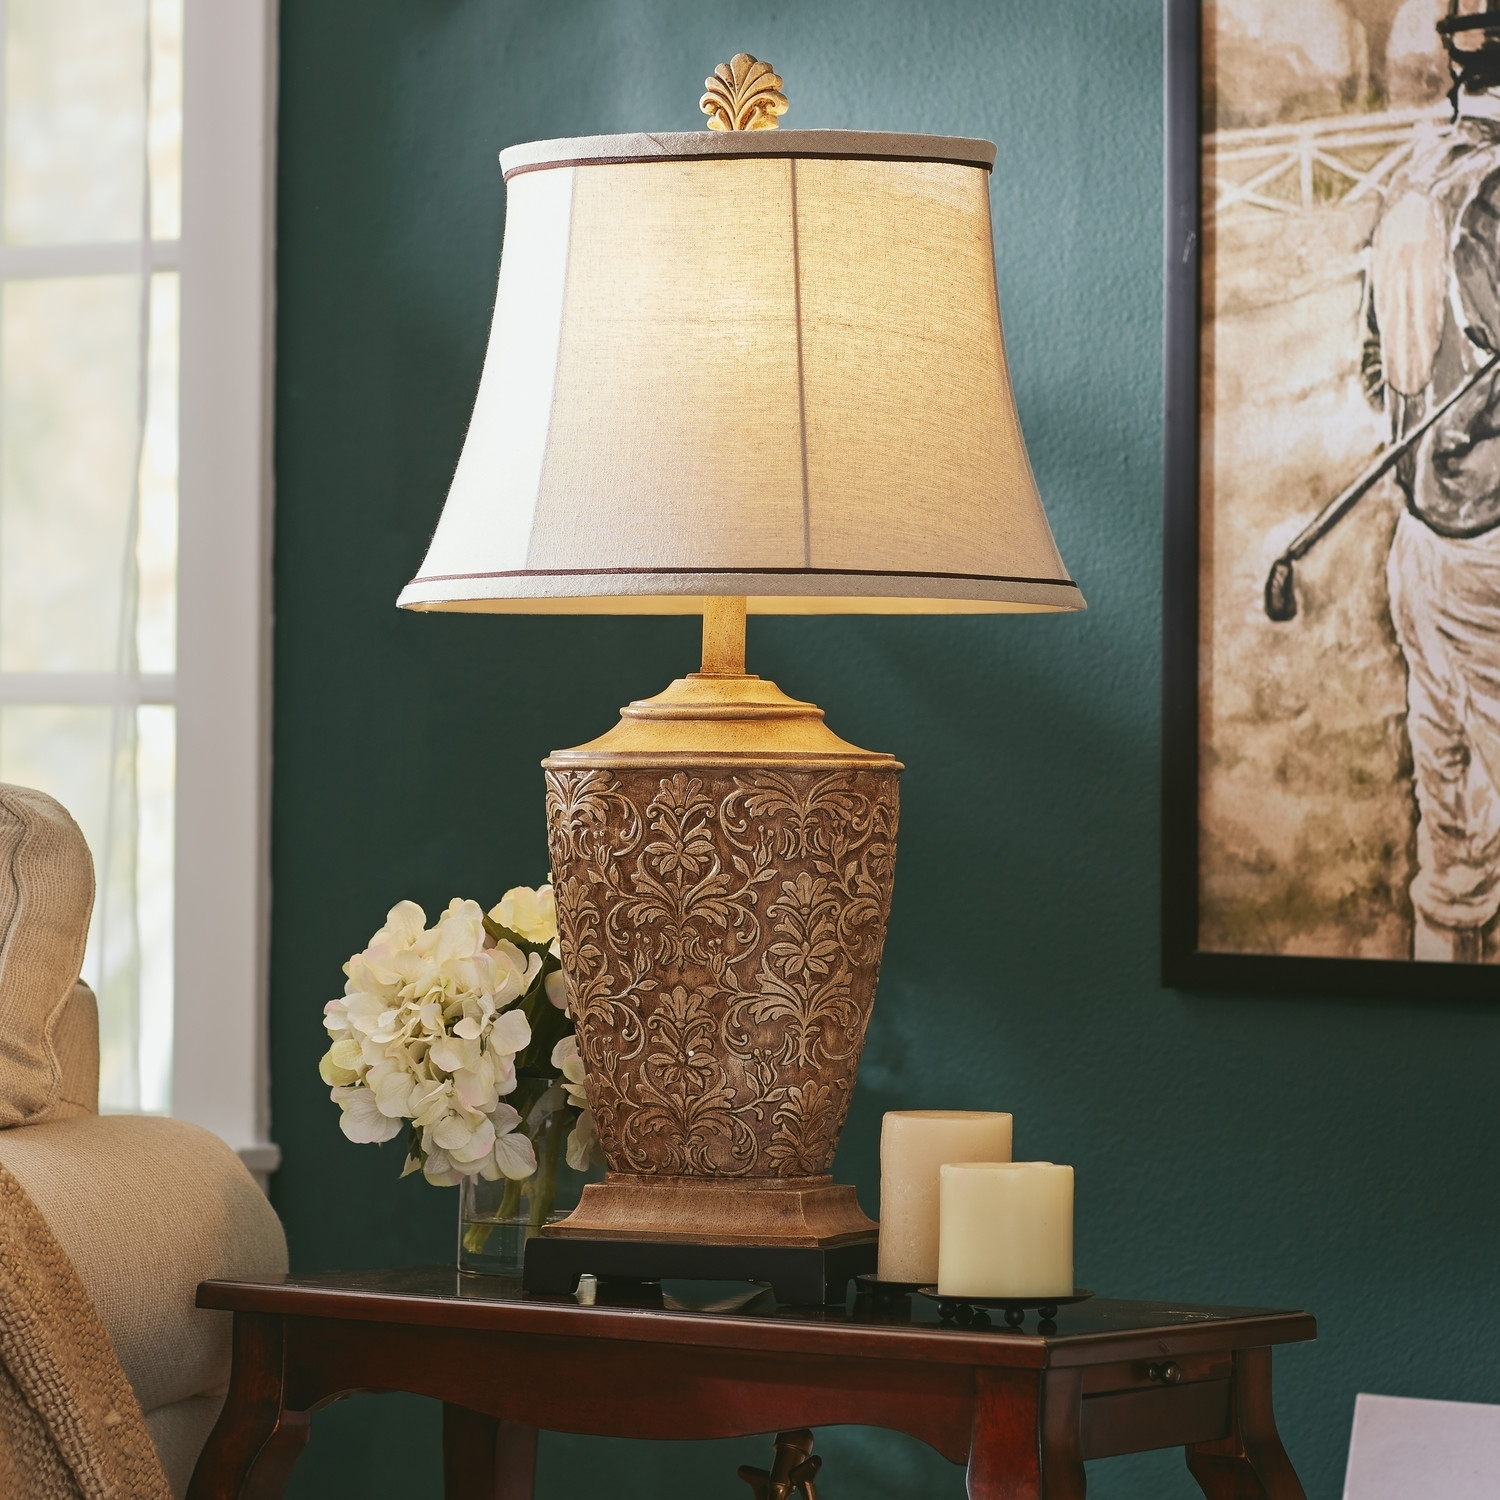 15 Ideas of Fancy Living Room Table Lamps